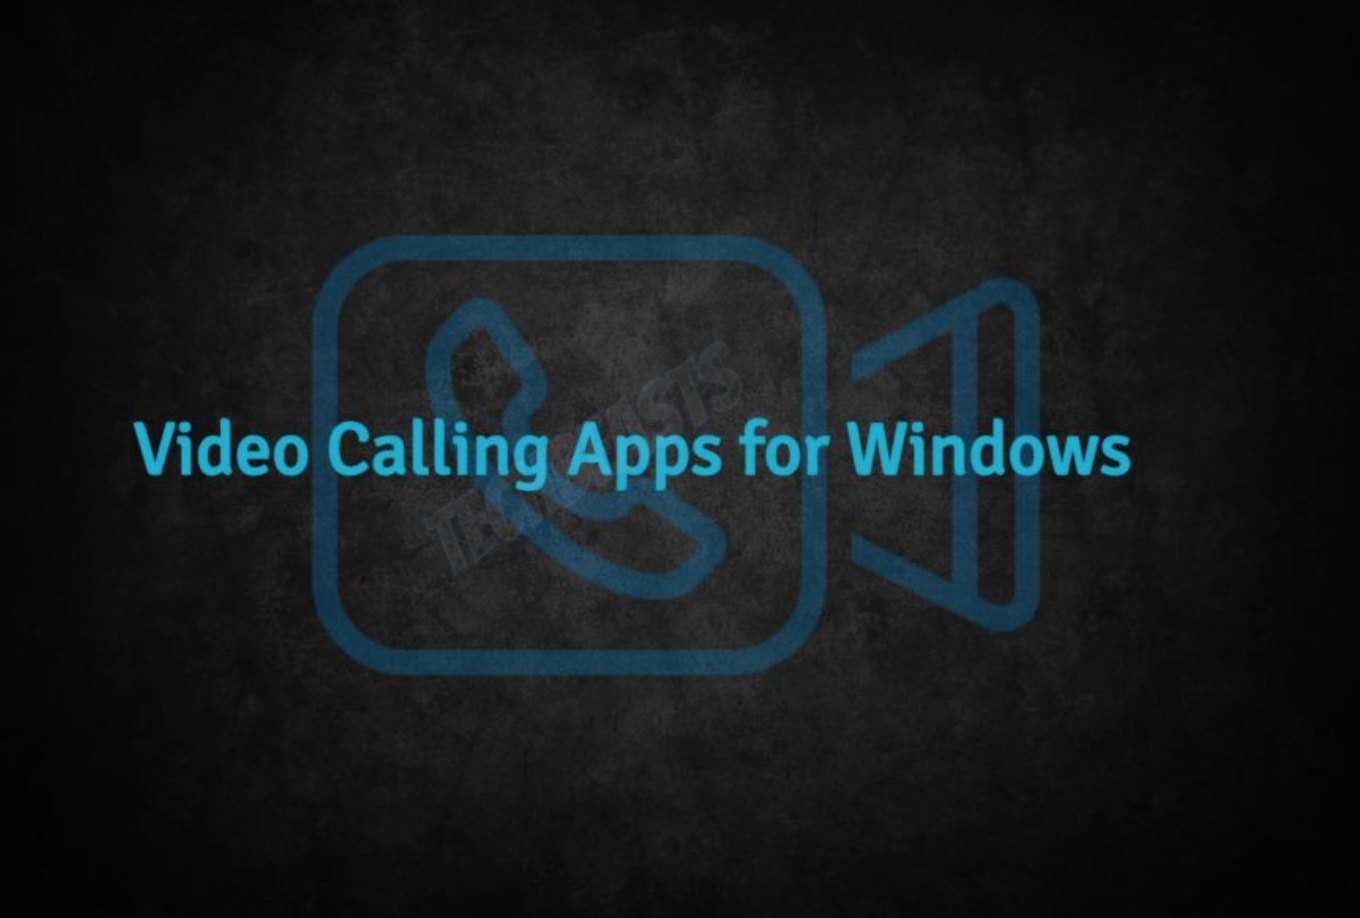 Video Calling Apps for Windows